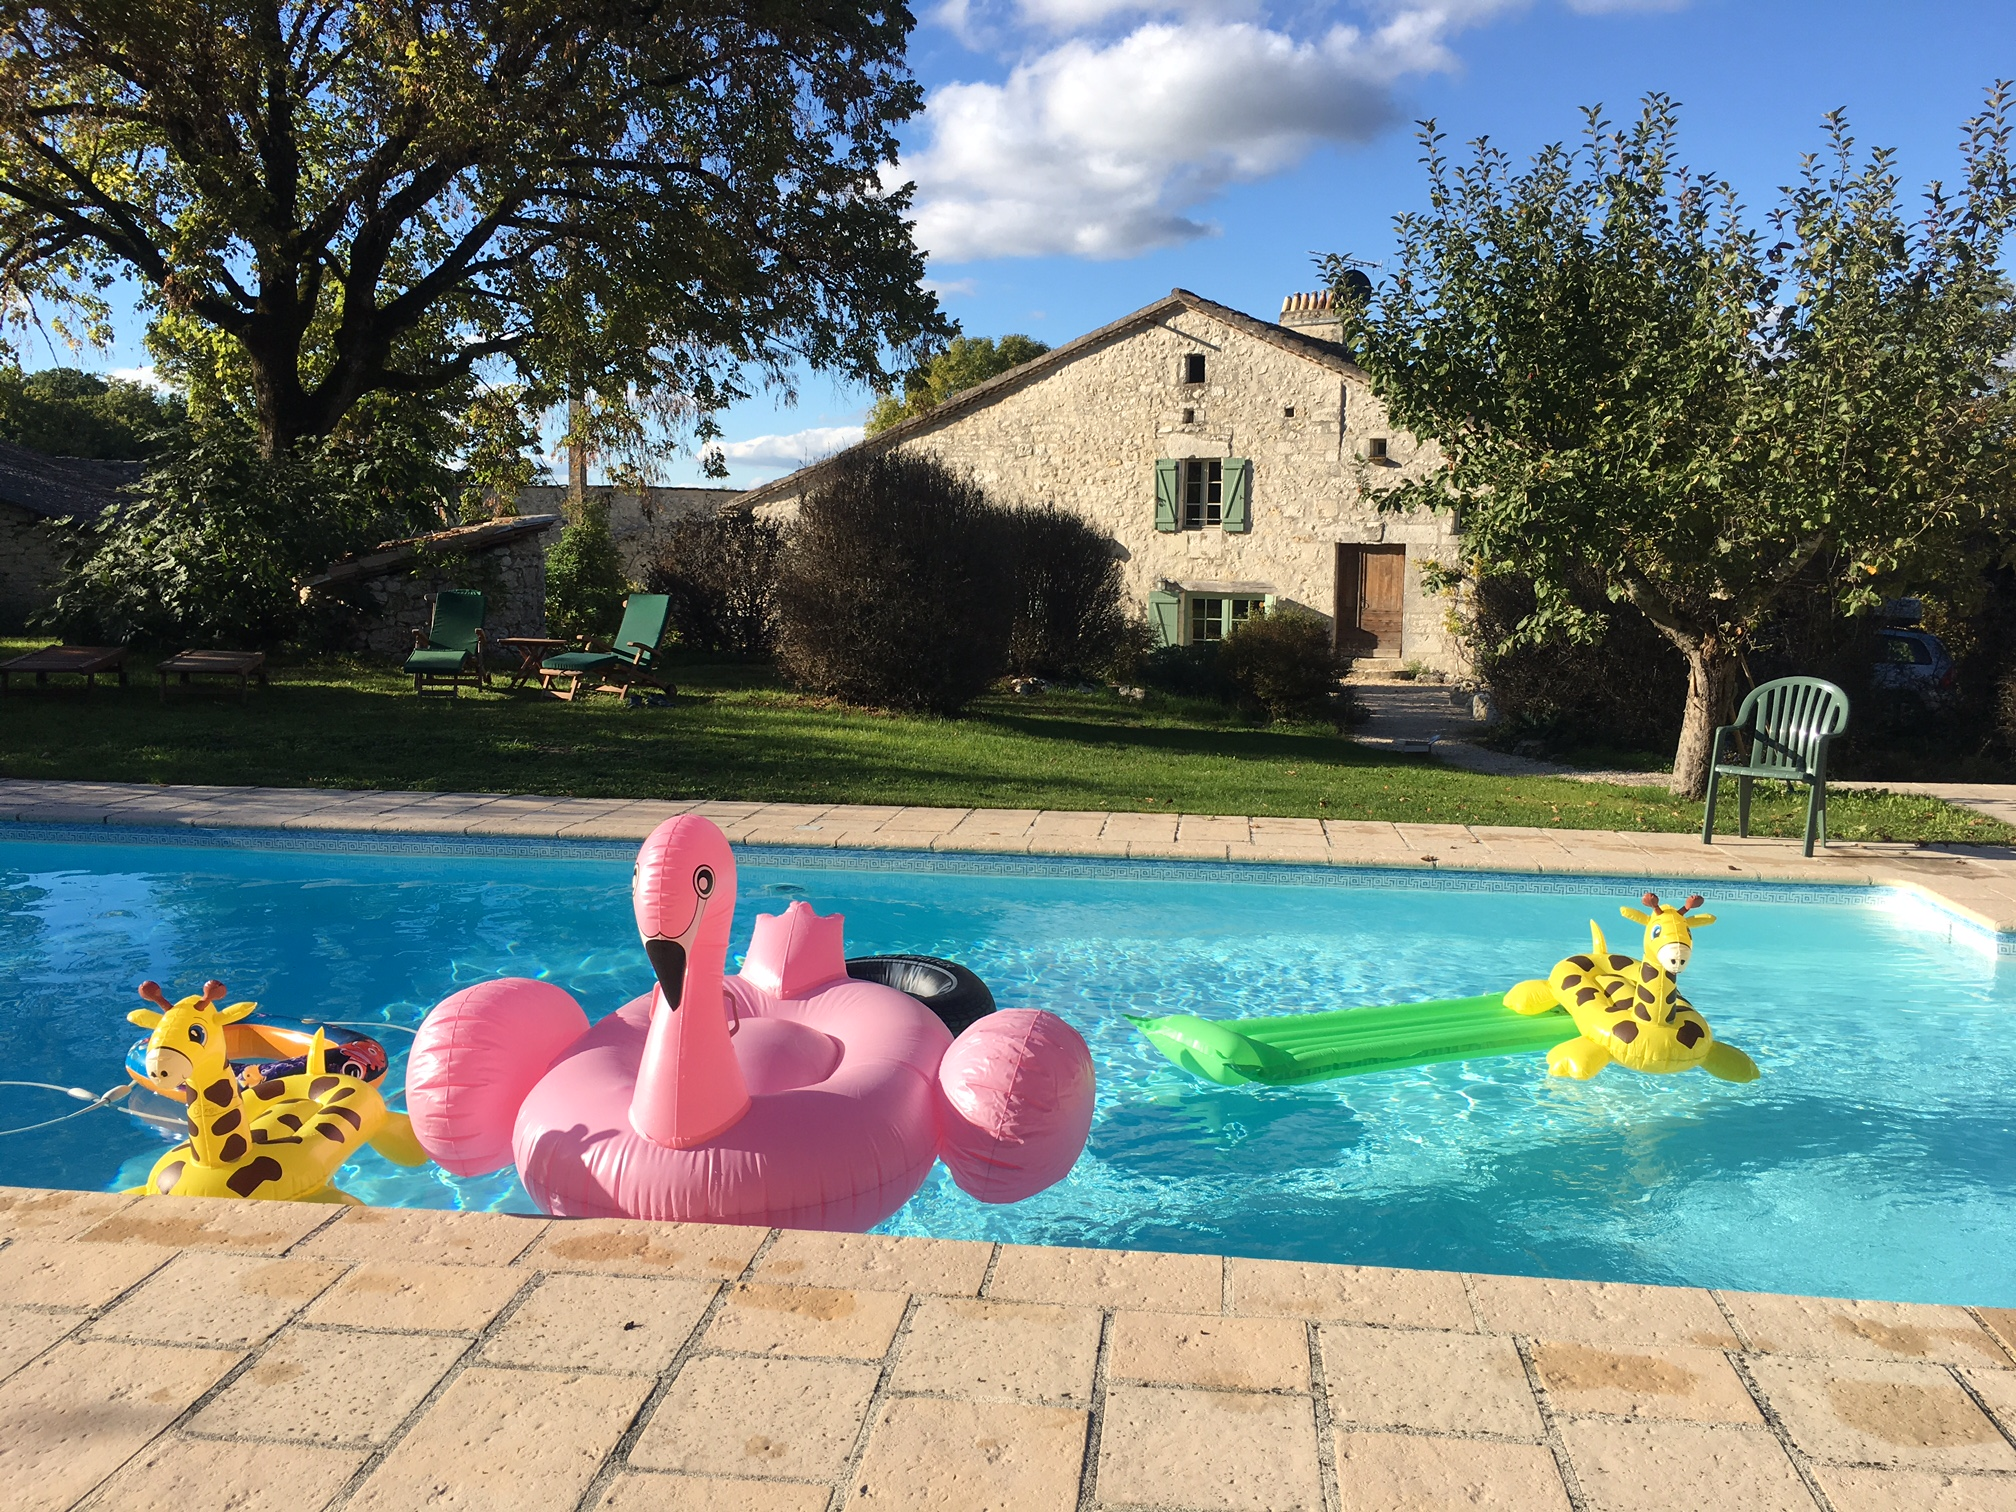 inflatables 0159.jpg